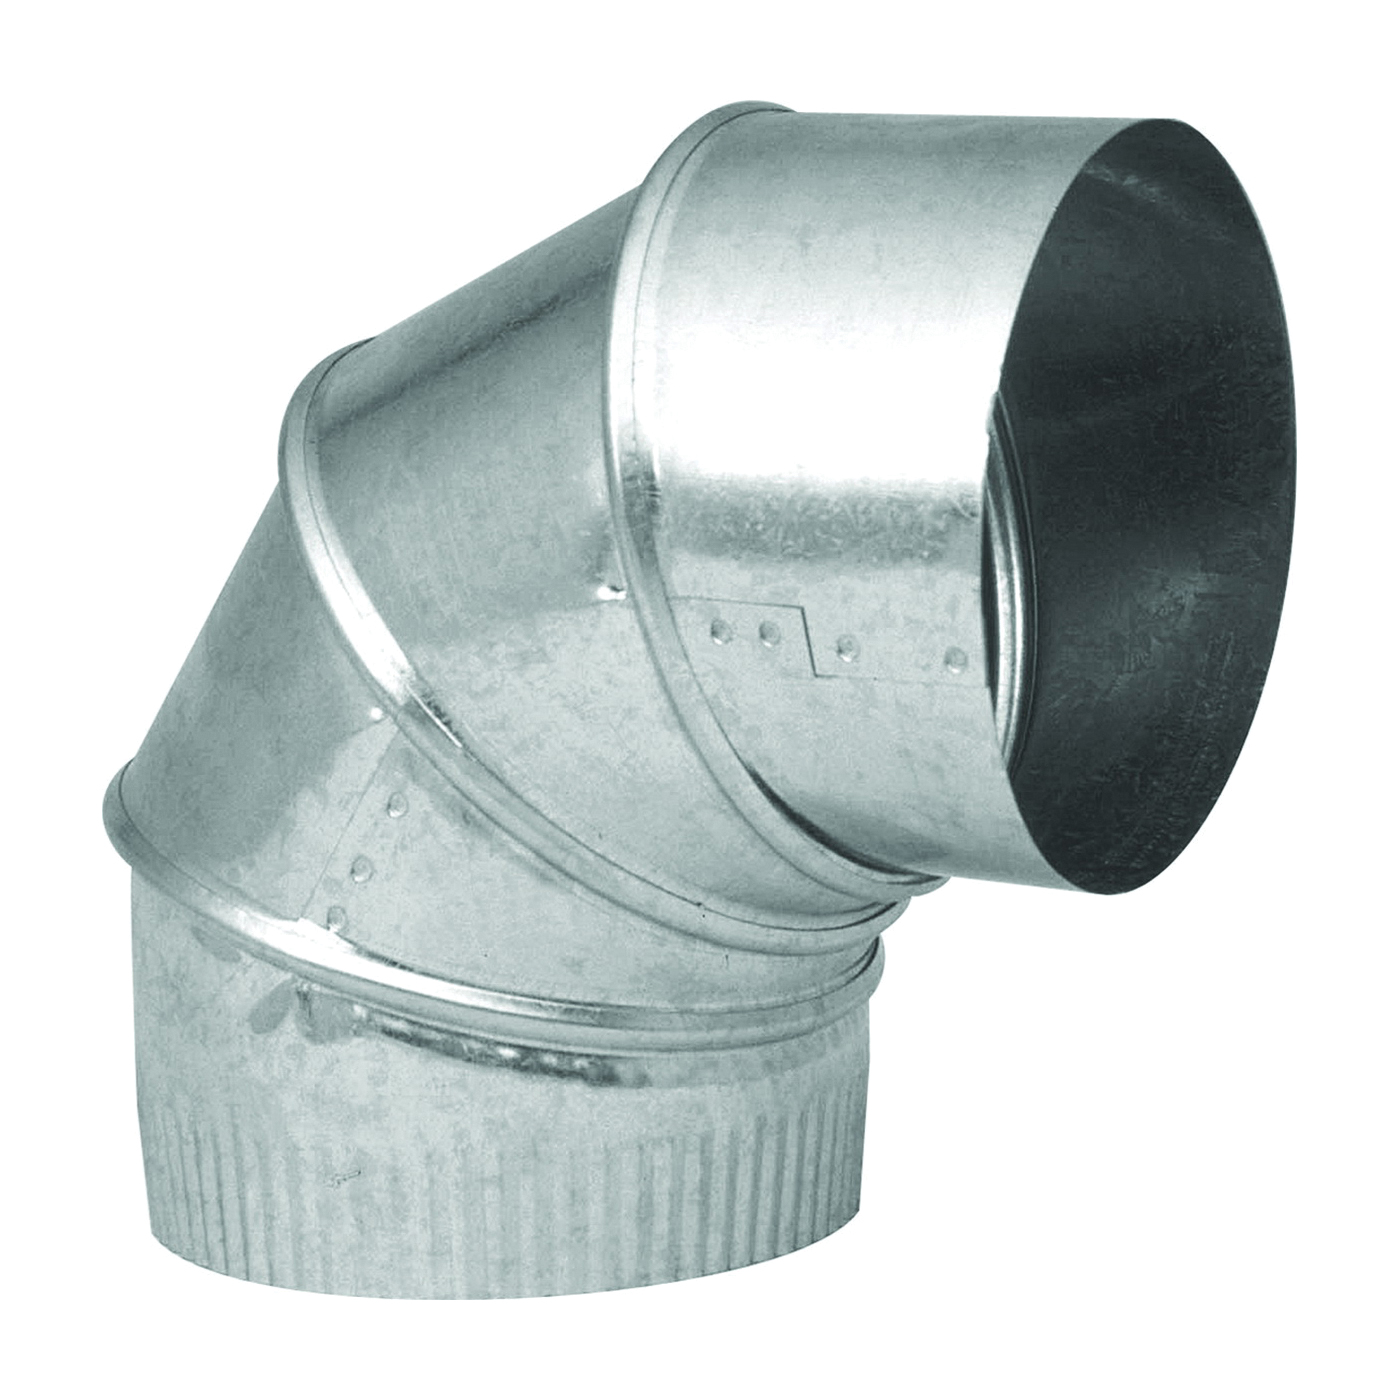 Picture of Imperial GV0289-C Stove Pipe Elbow, 5 in Connection, 26 Gauge, Galvanized